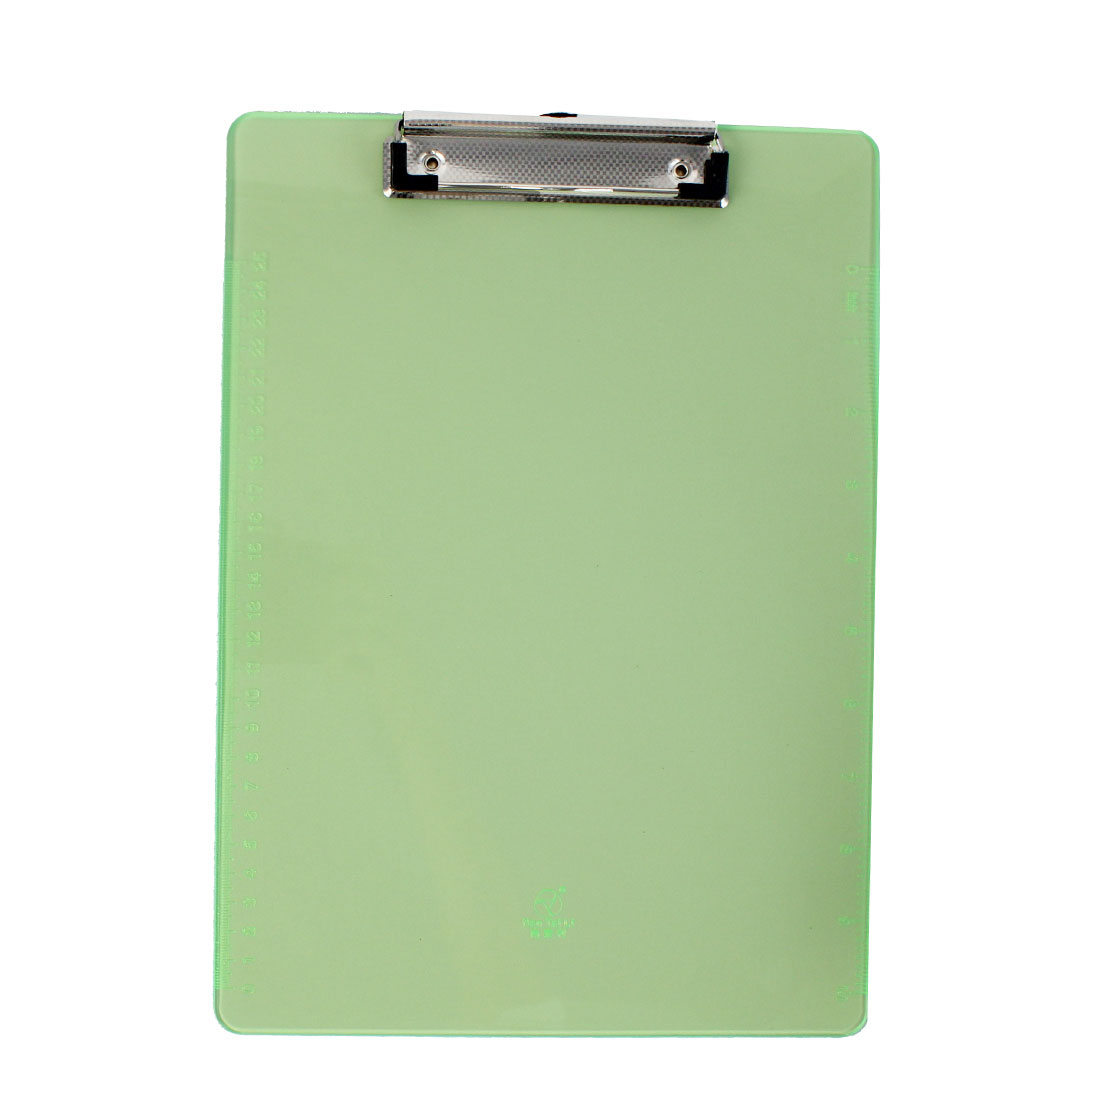 Office   A4 Paper File Note Holder Clamp Clip Board Hardboard Clear Green - image 3 of 3